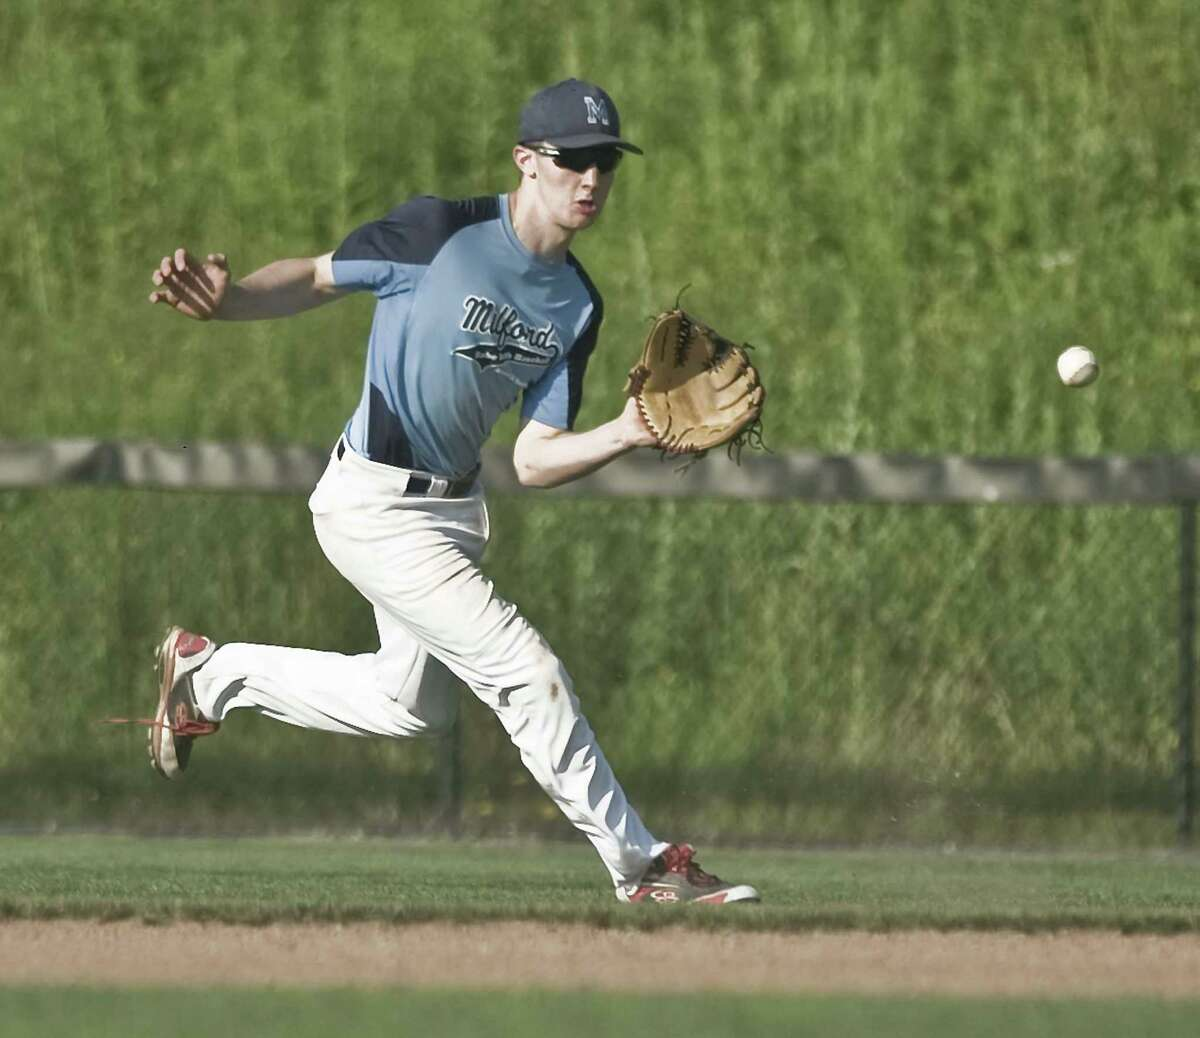 Milford right fielder Joseph Gaetano fields the ball on a hop in game 2 of the 13-year-old Babe Ruth baseball state tournament championship against New Milford, played at the Fairfield Hills Complex in Newtown. Friday, July 13, 2018